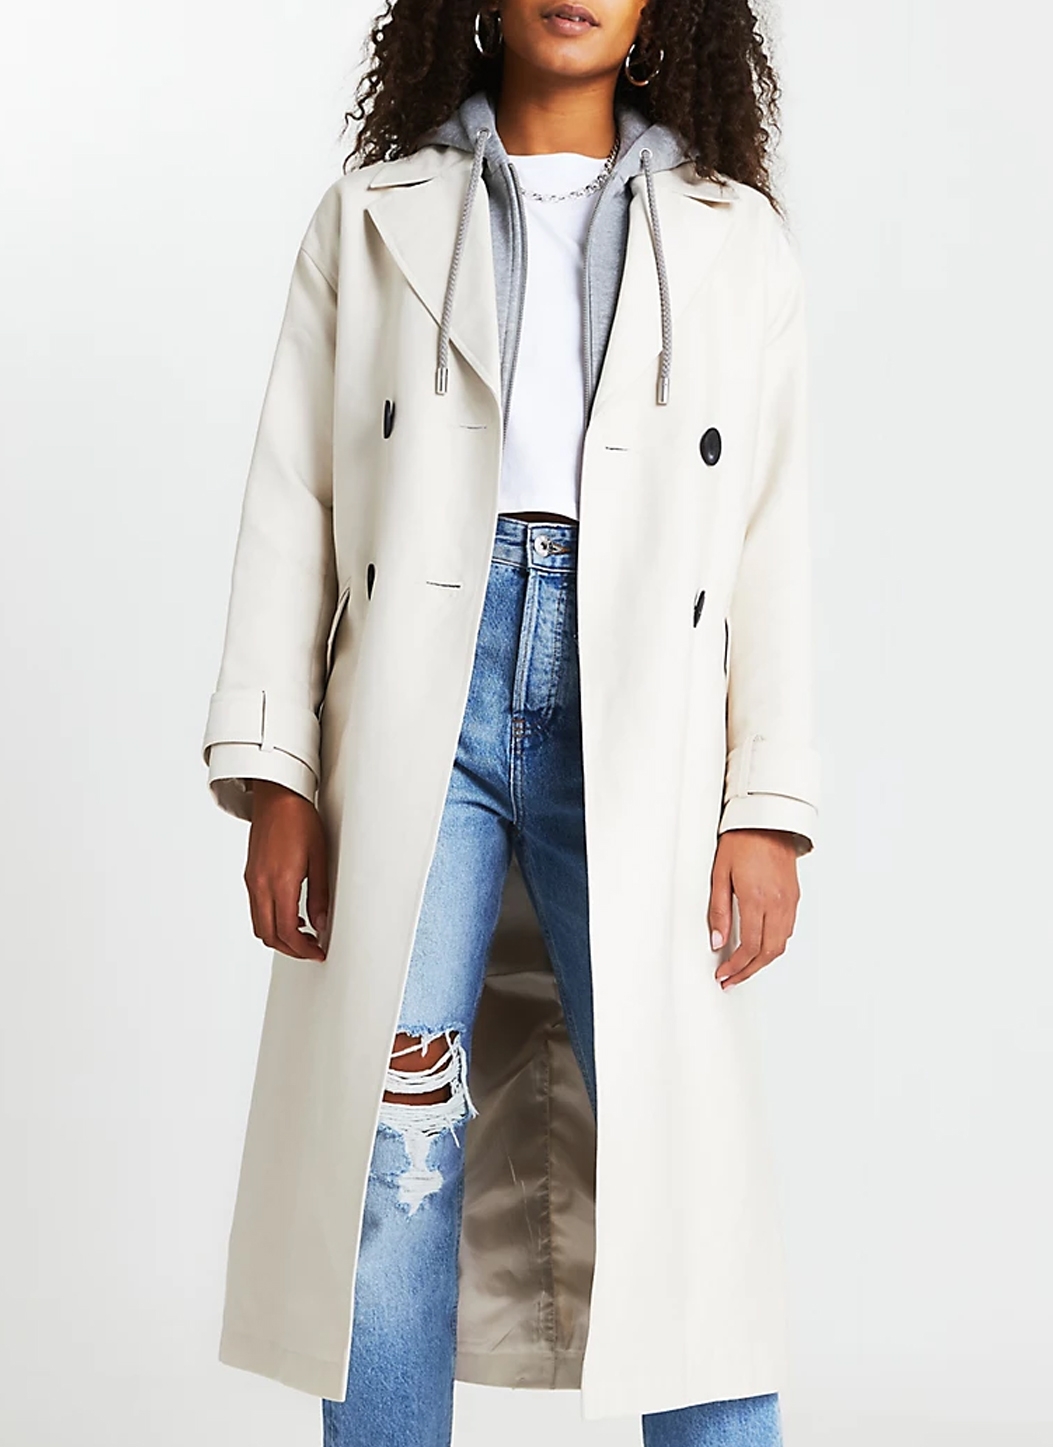 white trench coat woman 2021